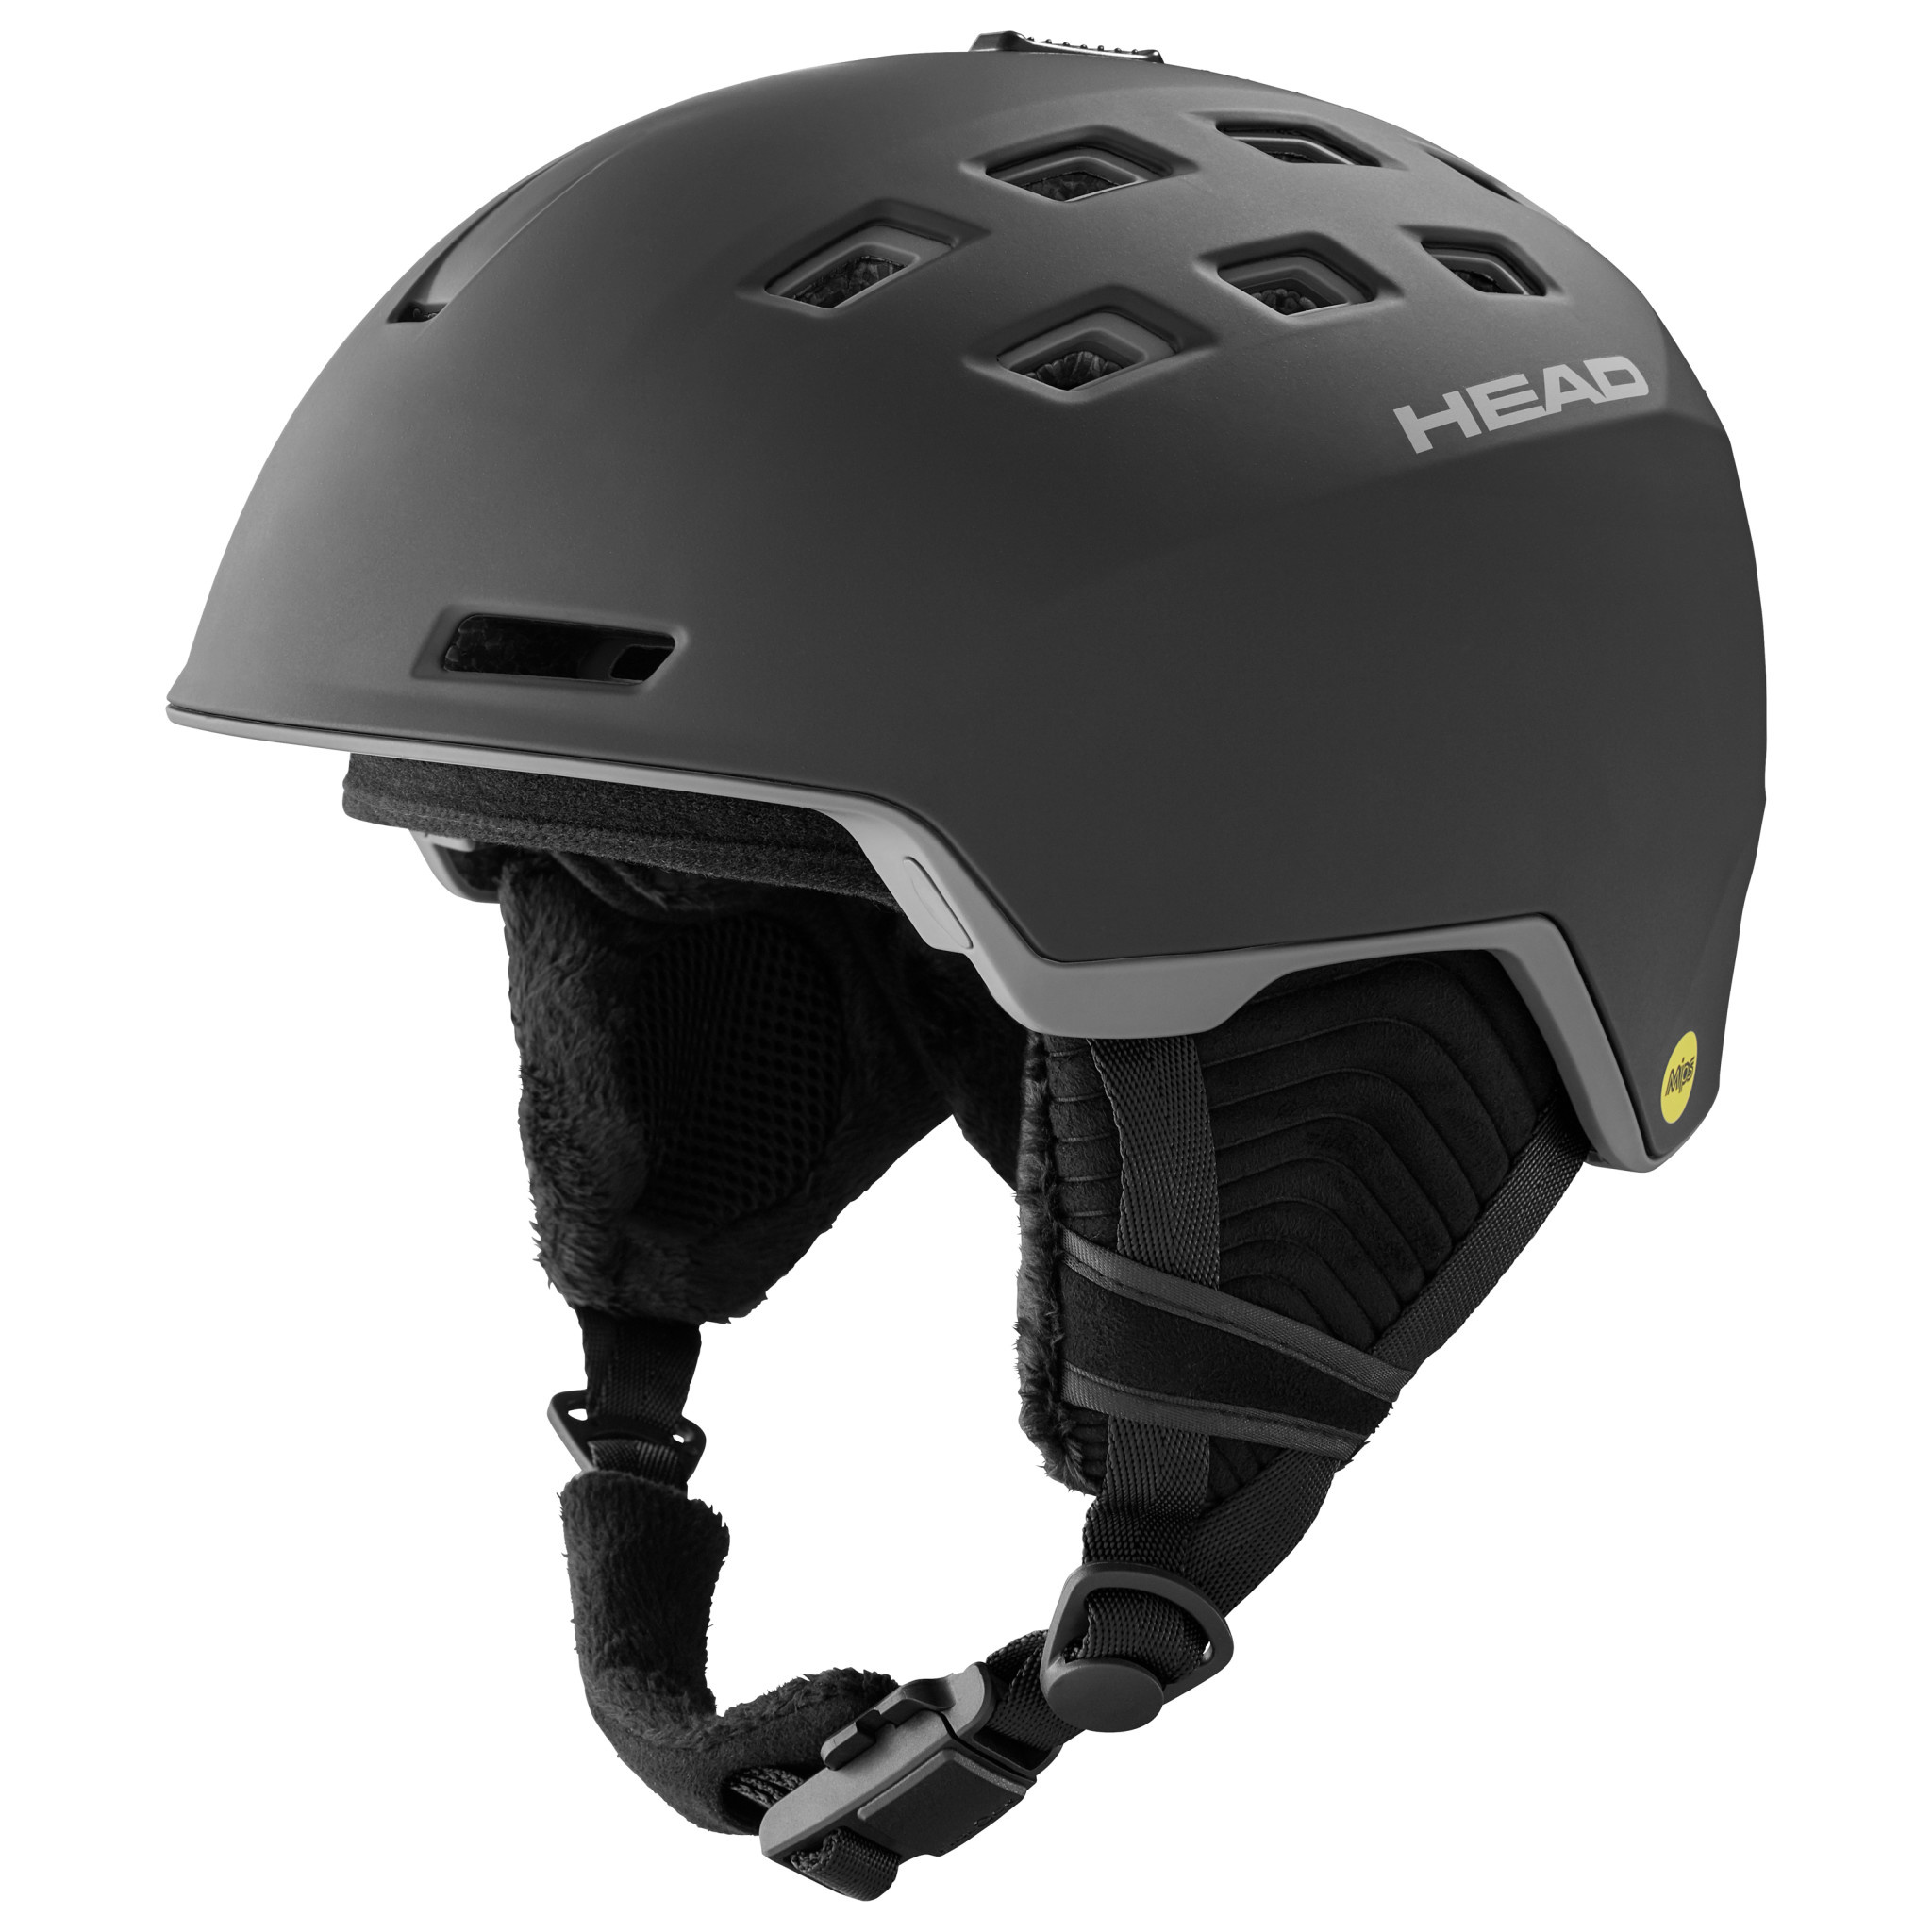 Head Head Rev MIPS Snow Helmet